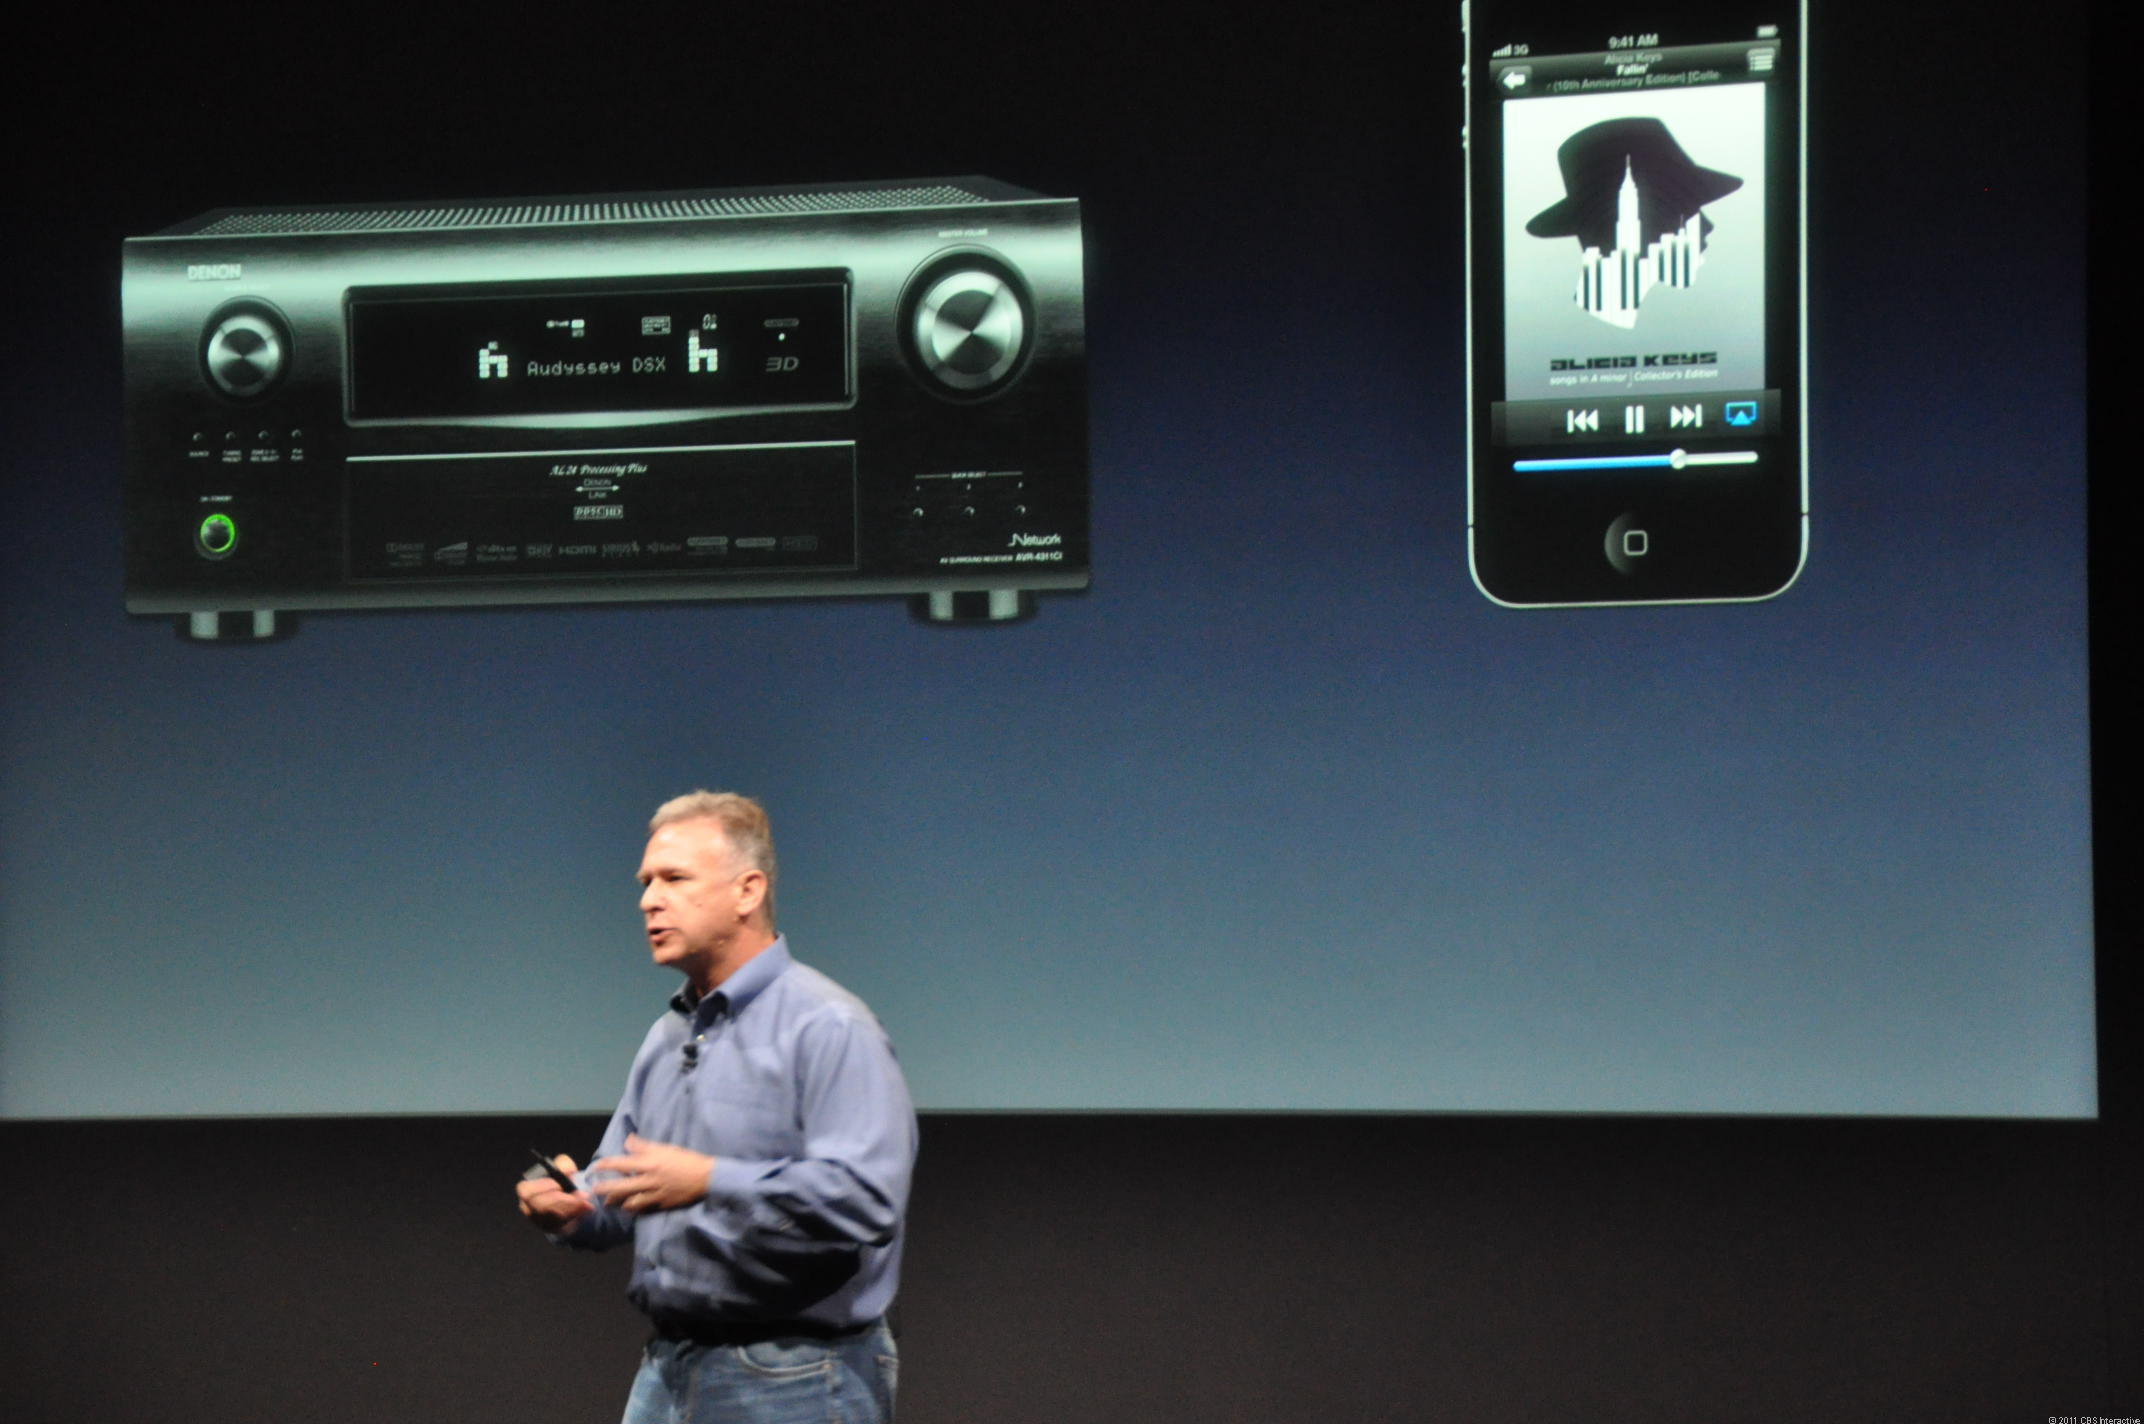 Phil Schiller says AirPlay mirroring is coming to the iPhone 4S, so your phone can mirror what your AppleTV is doing.